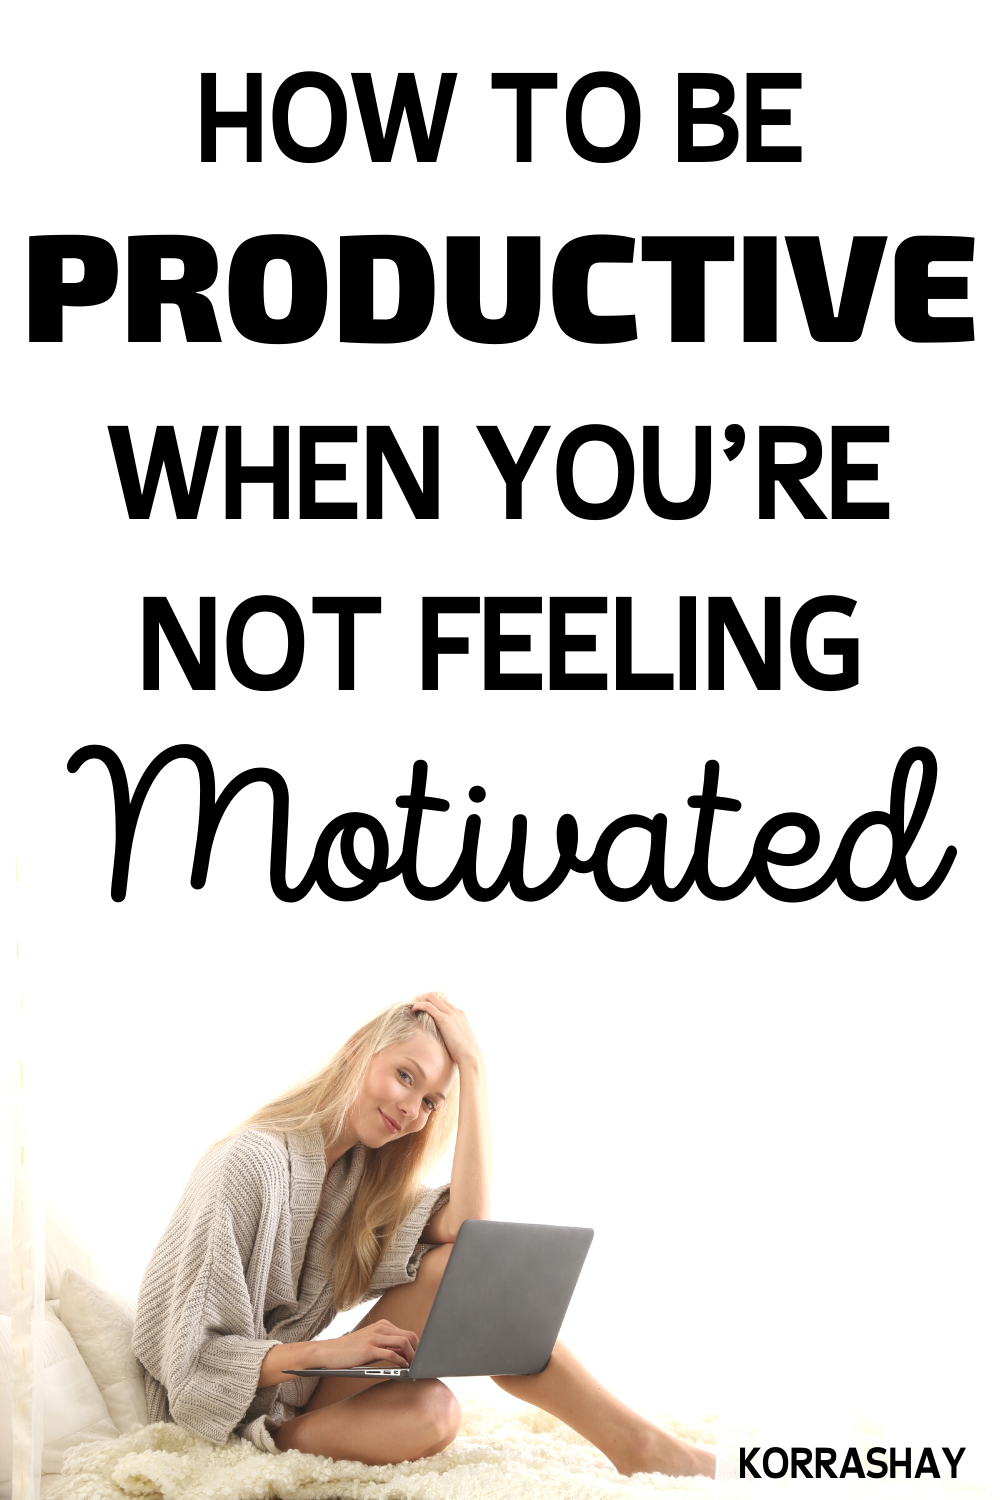 How To Be Productive When You're Not Motivated